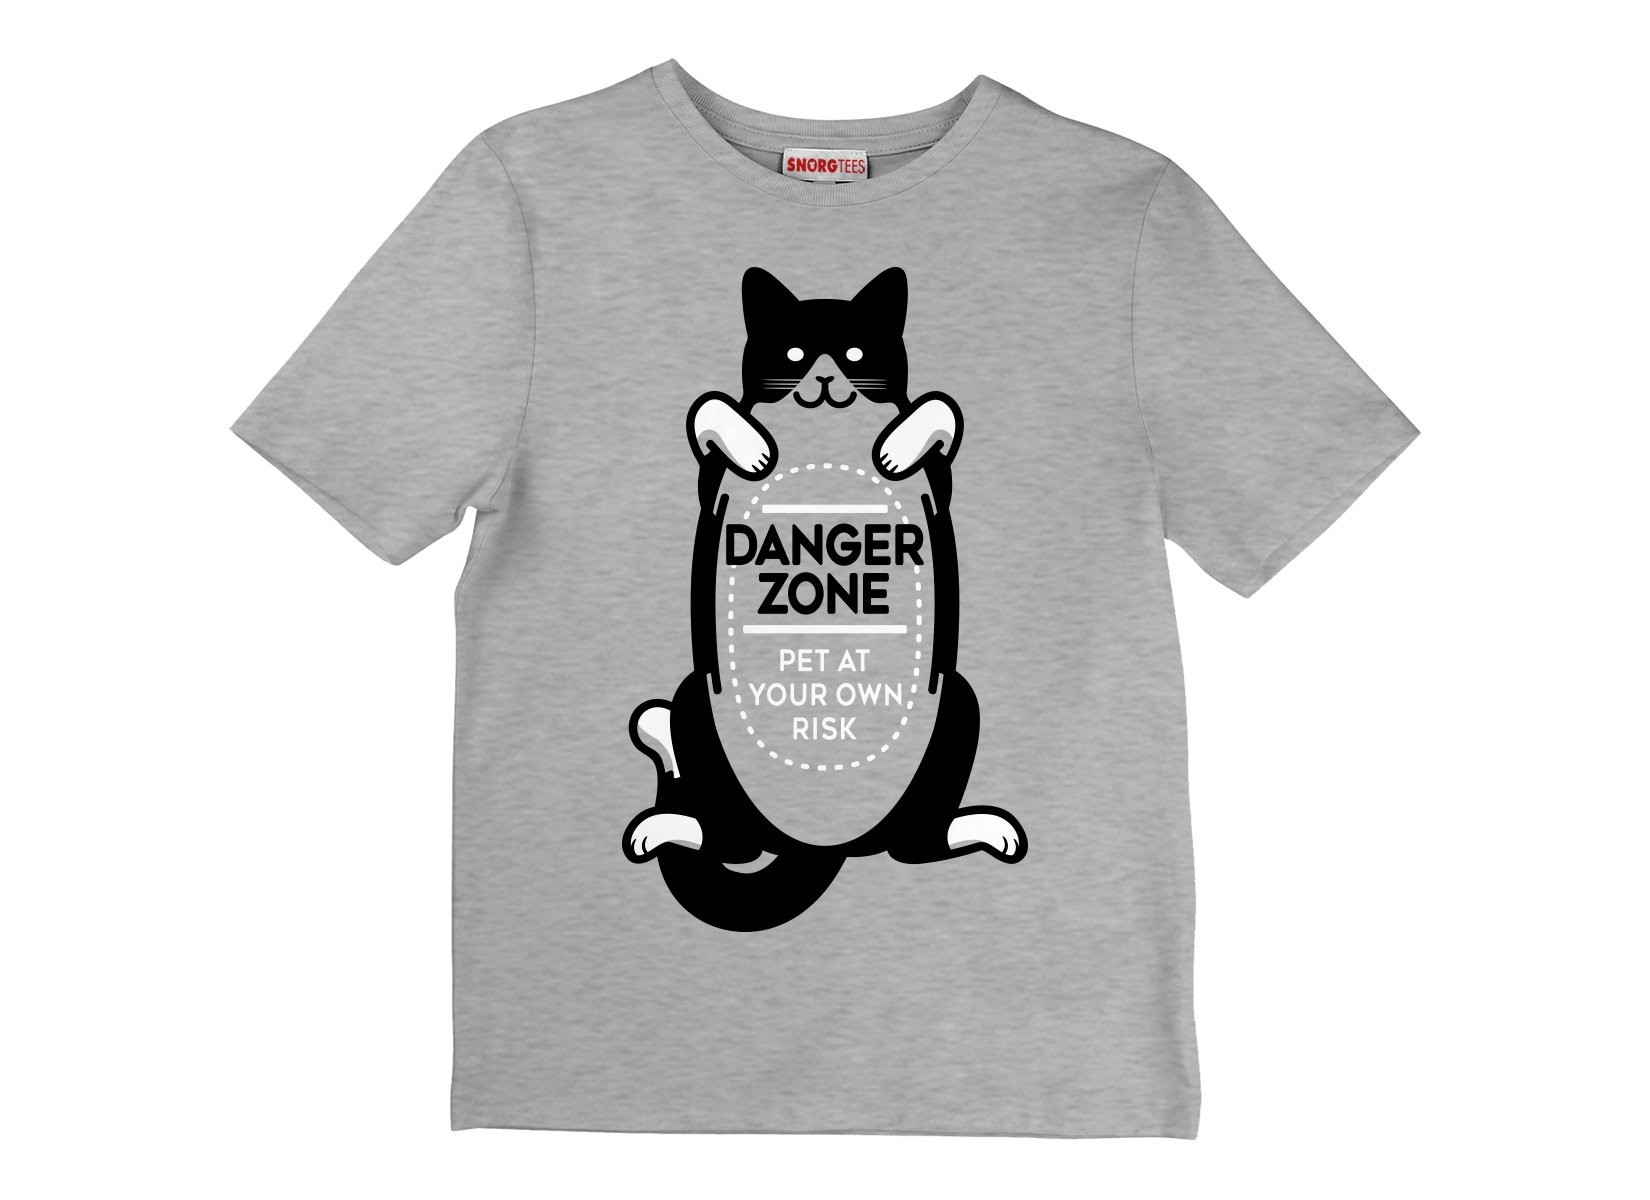 Cat Danger Zone on Kids T-Shirt